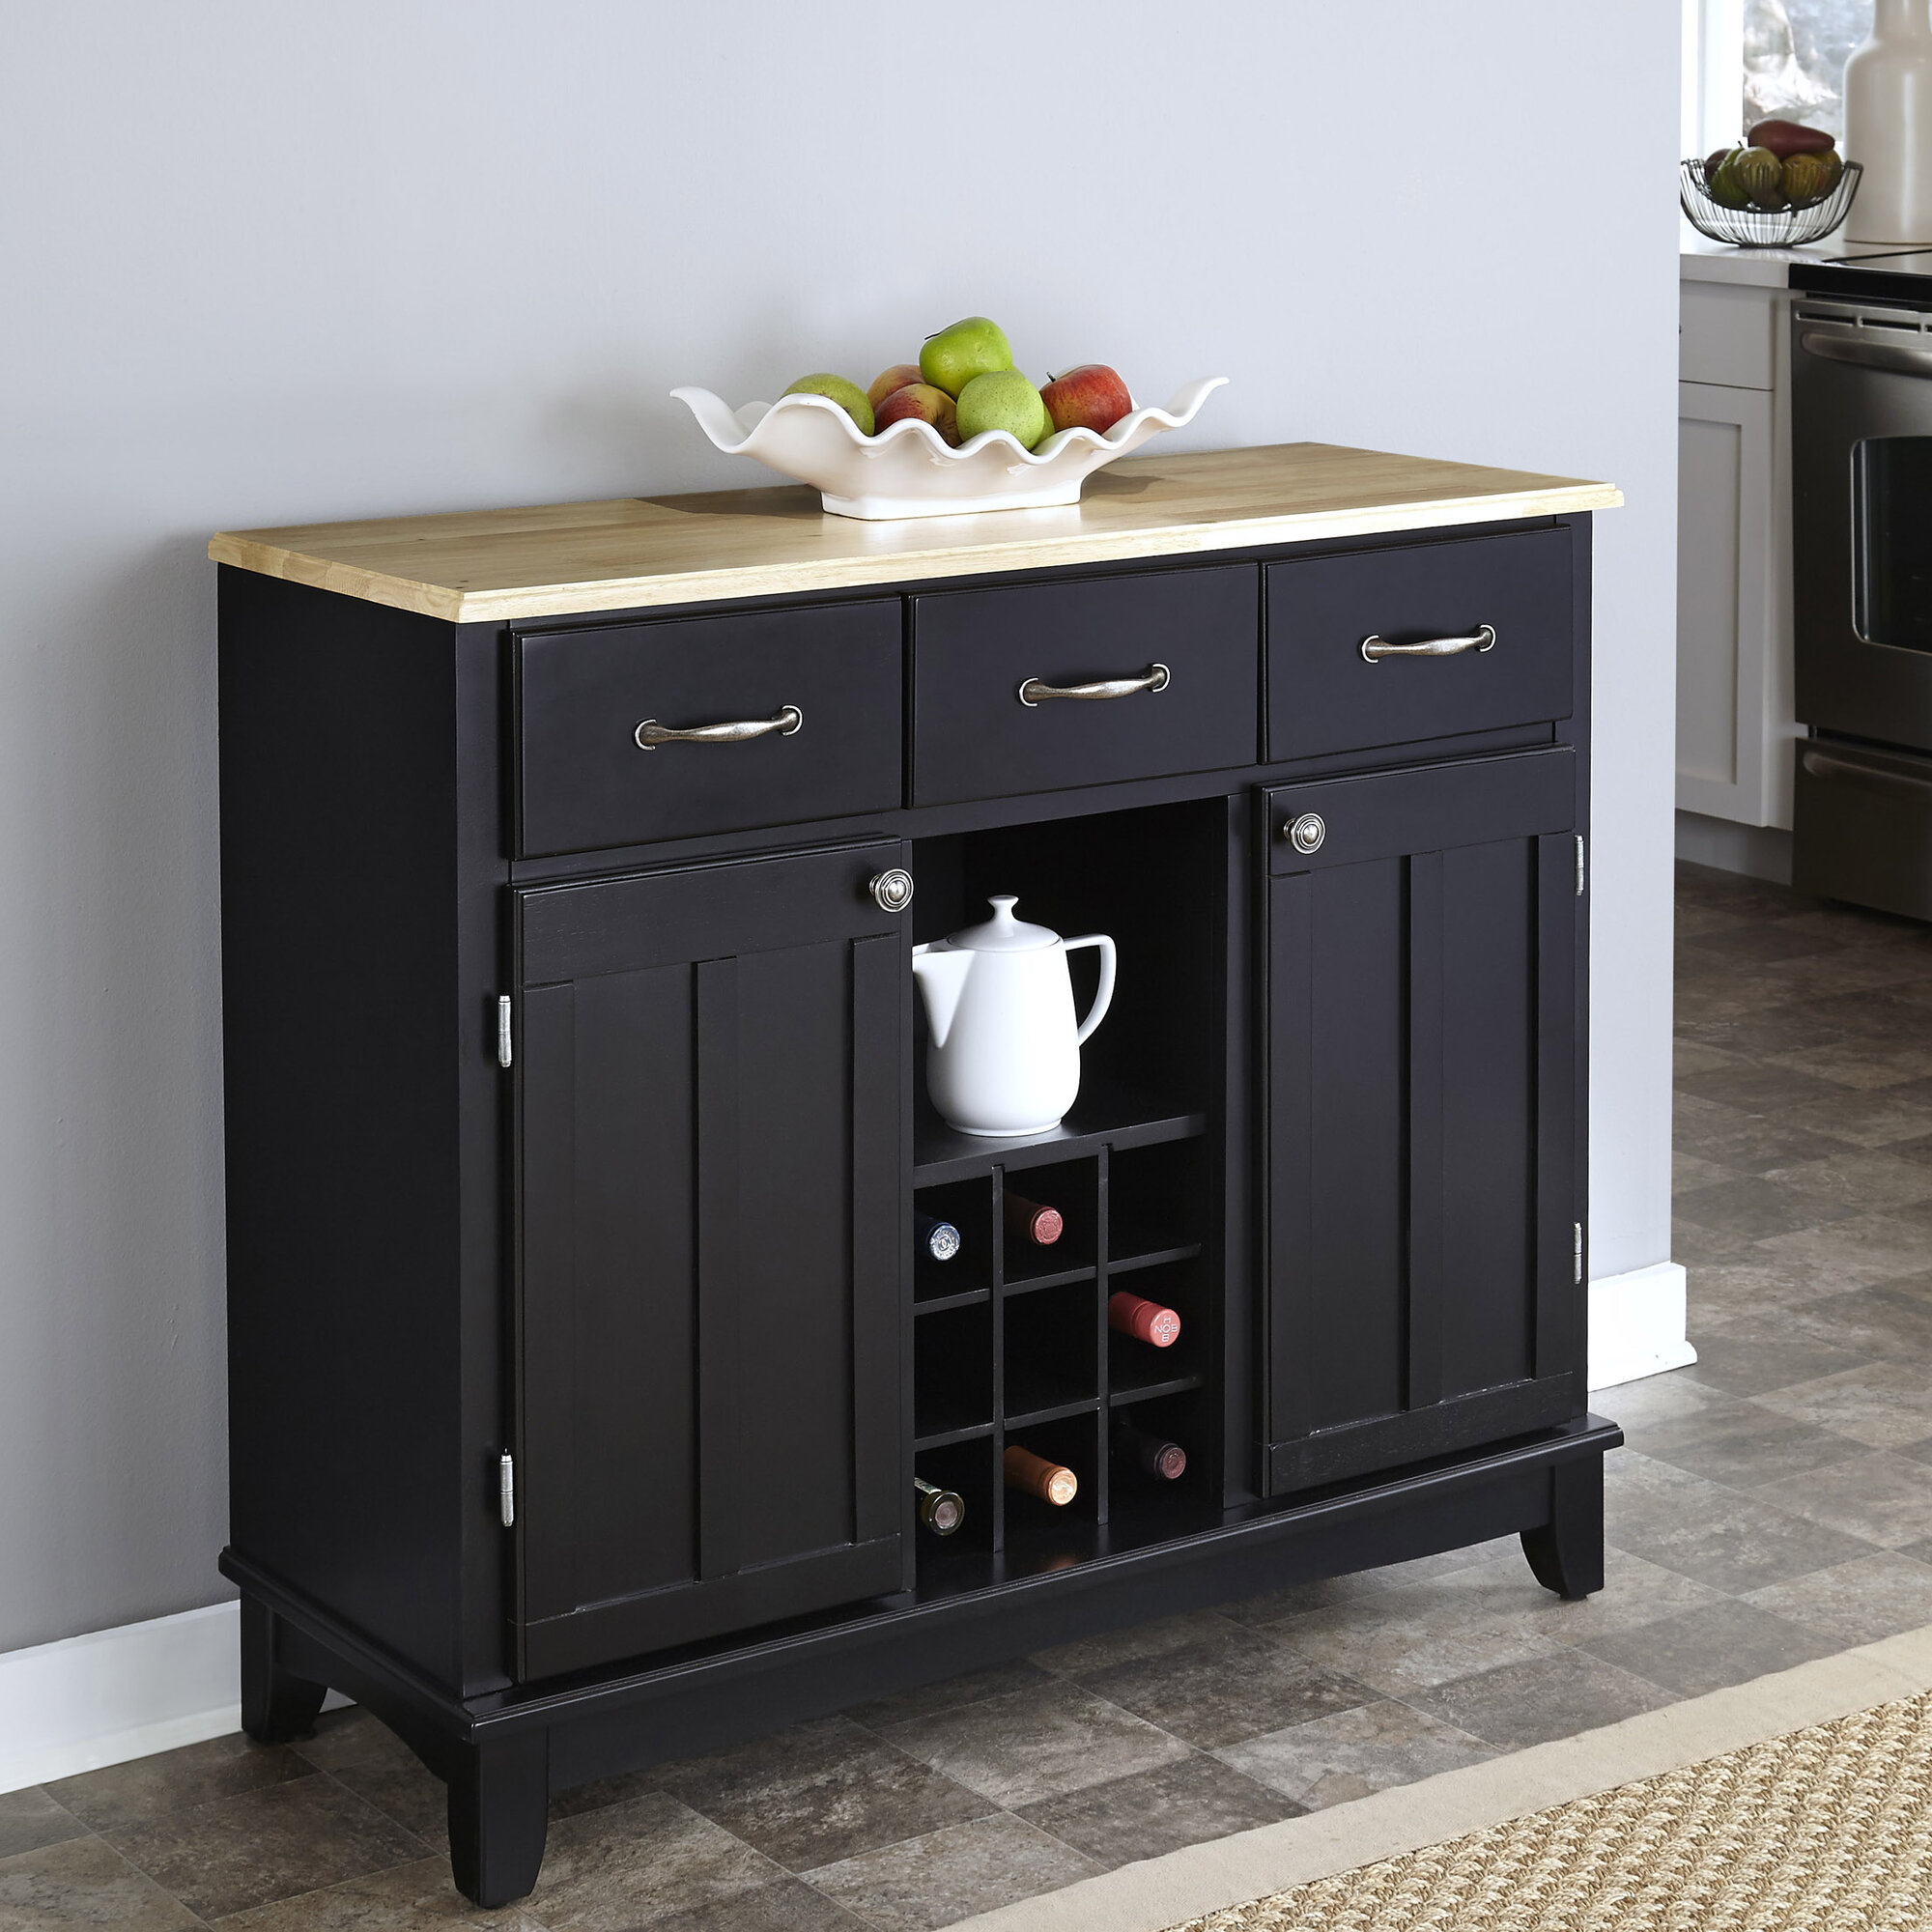 Dining Room Sideboards And Buffets: Sideboard Buffet Server Dining Room Cabinet Wine Rack